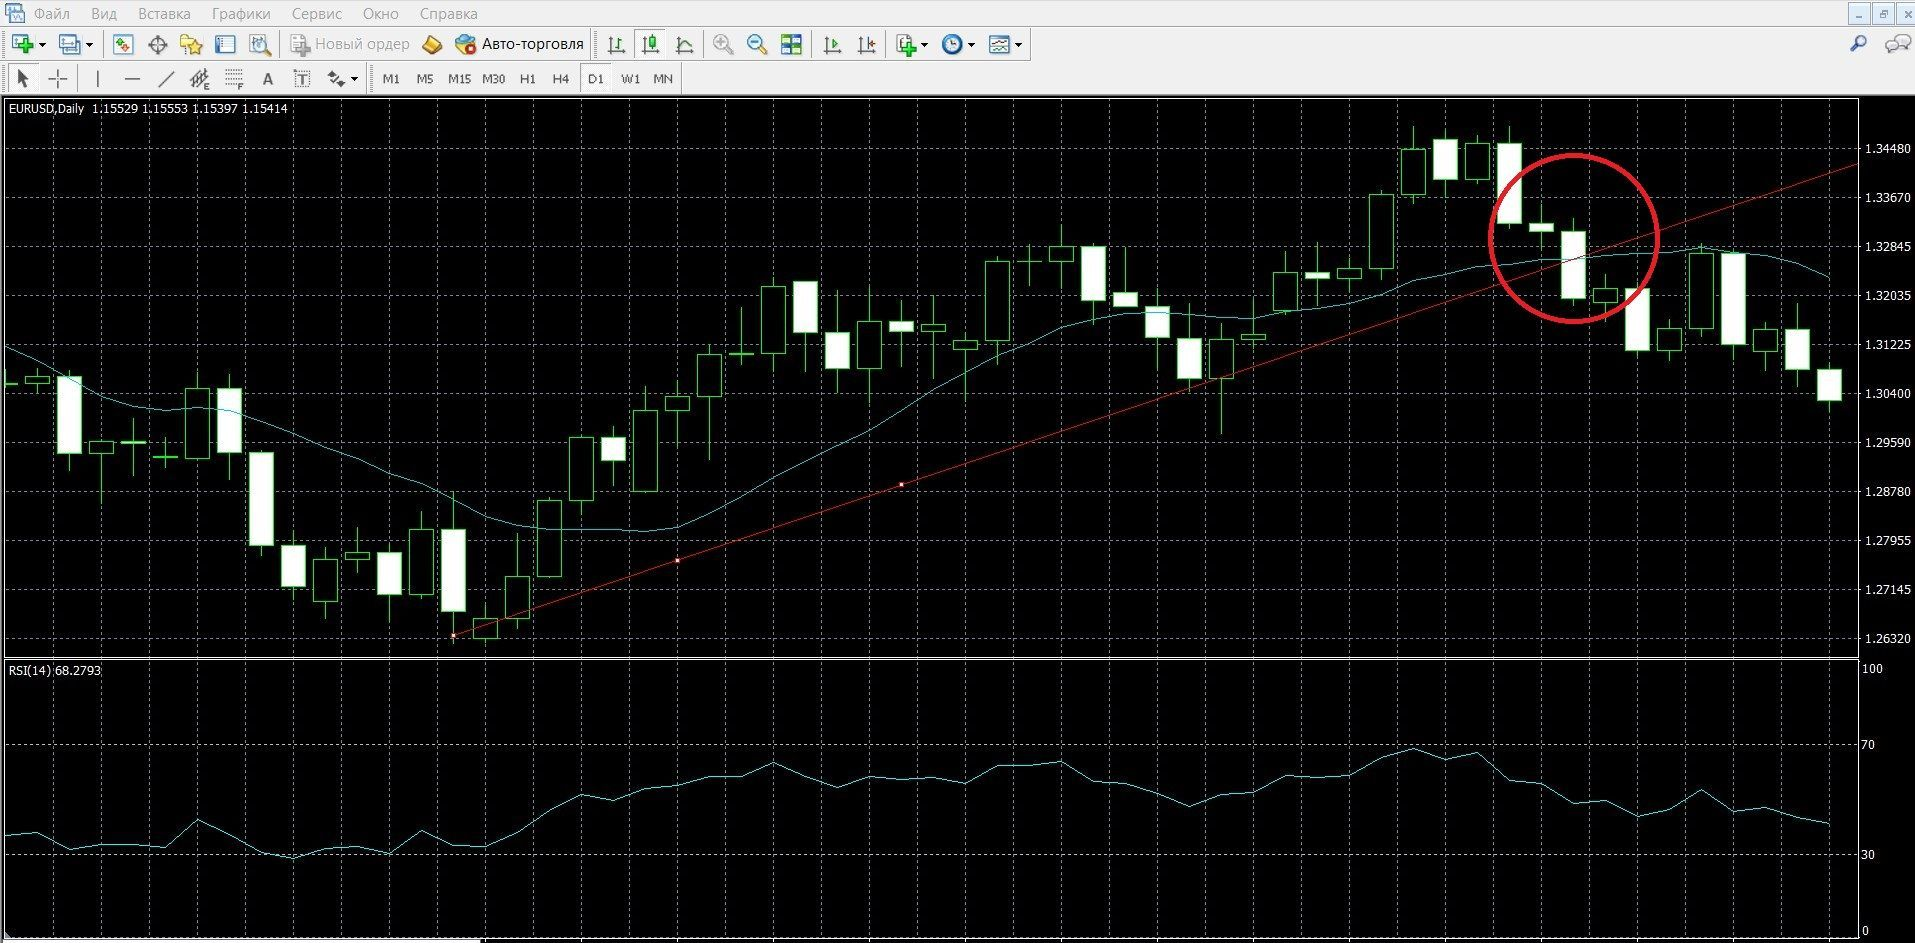 Trading in the breakdown of the trend line